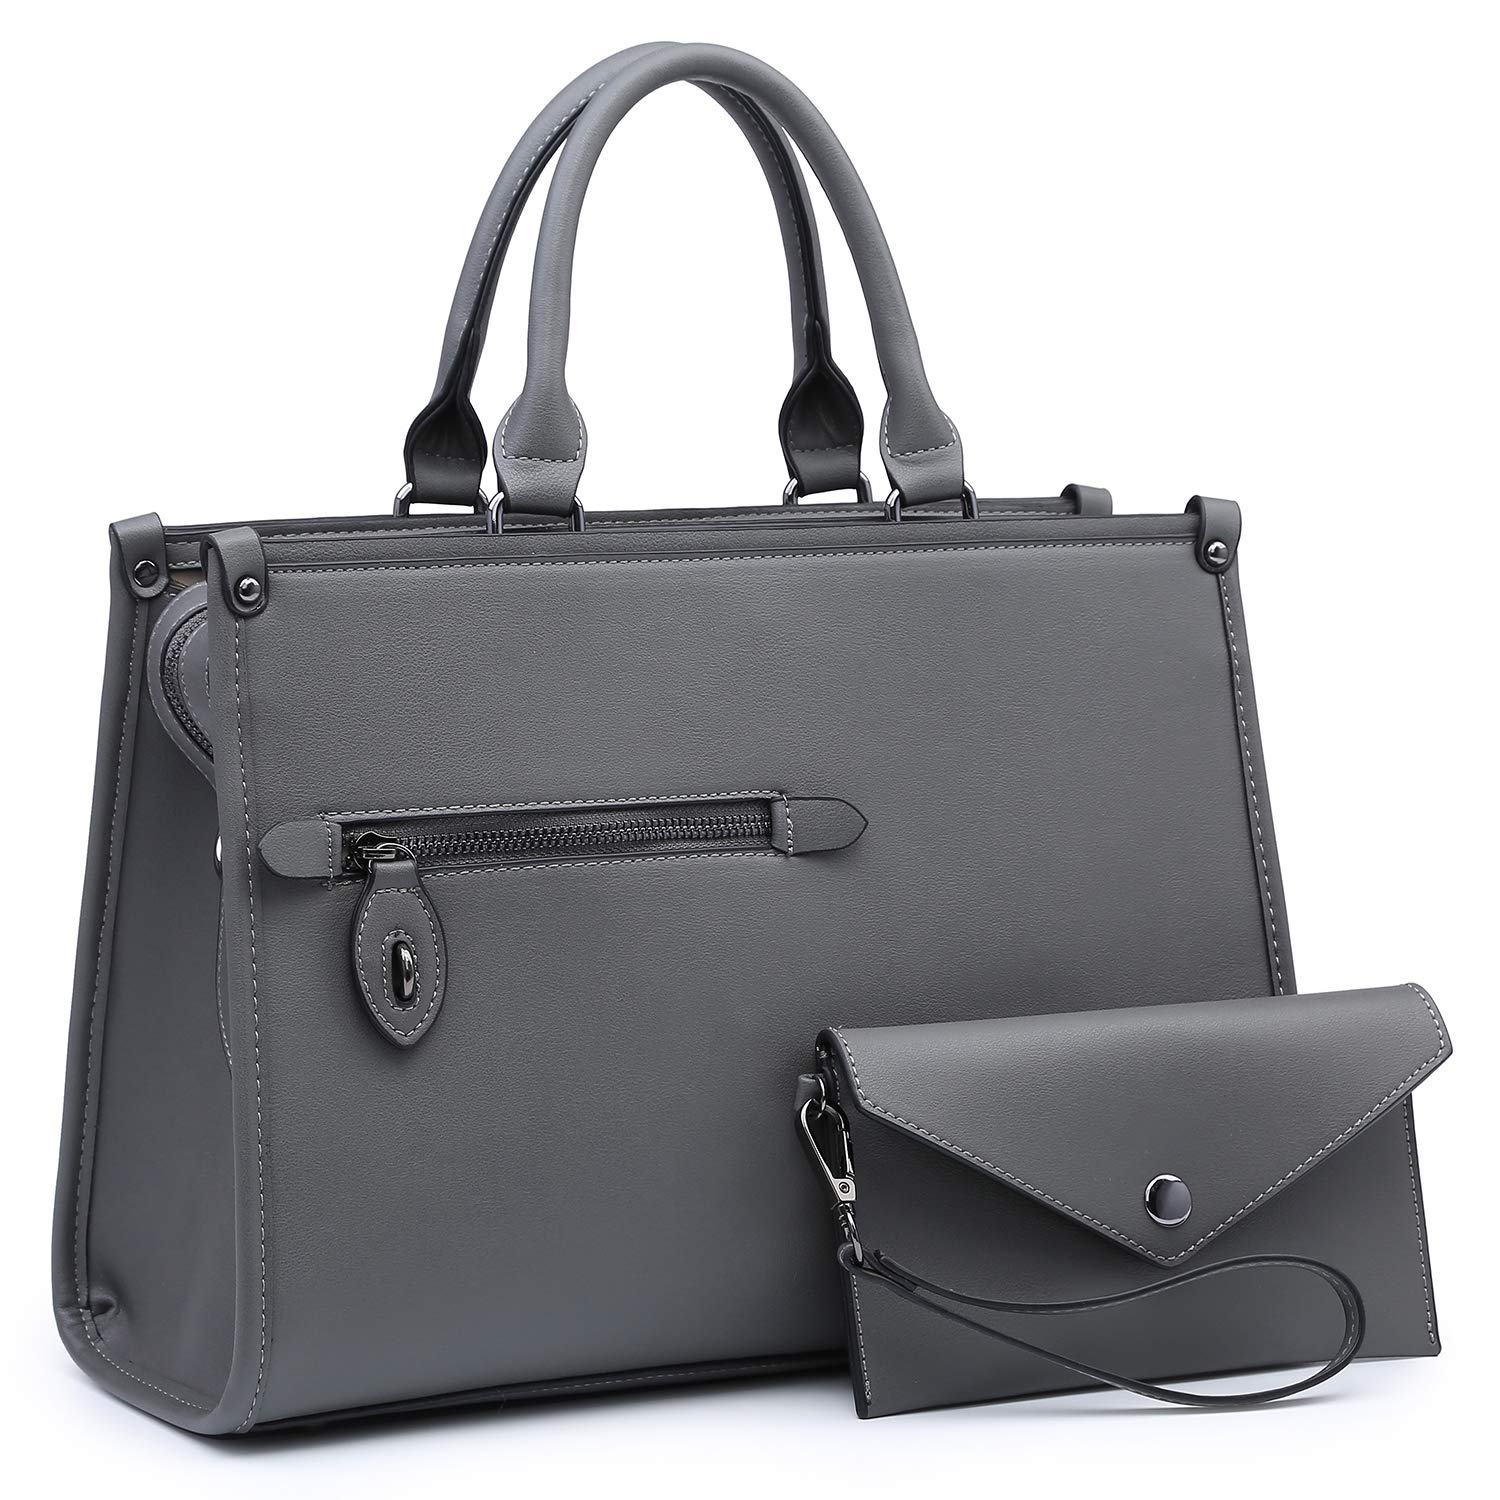 f8a083d811 Amazon.com  Dasein Purses and Handbags Shoulder Bags Tote Bags for Women  Satchel Handbags With Wallet 2pcs  Shoes